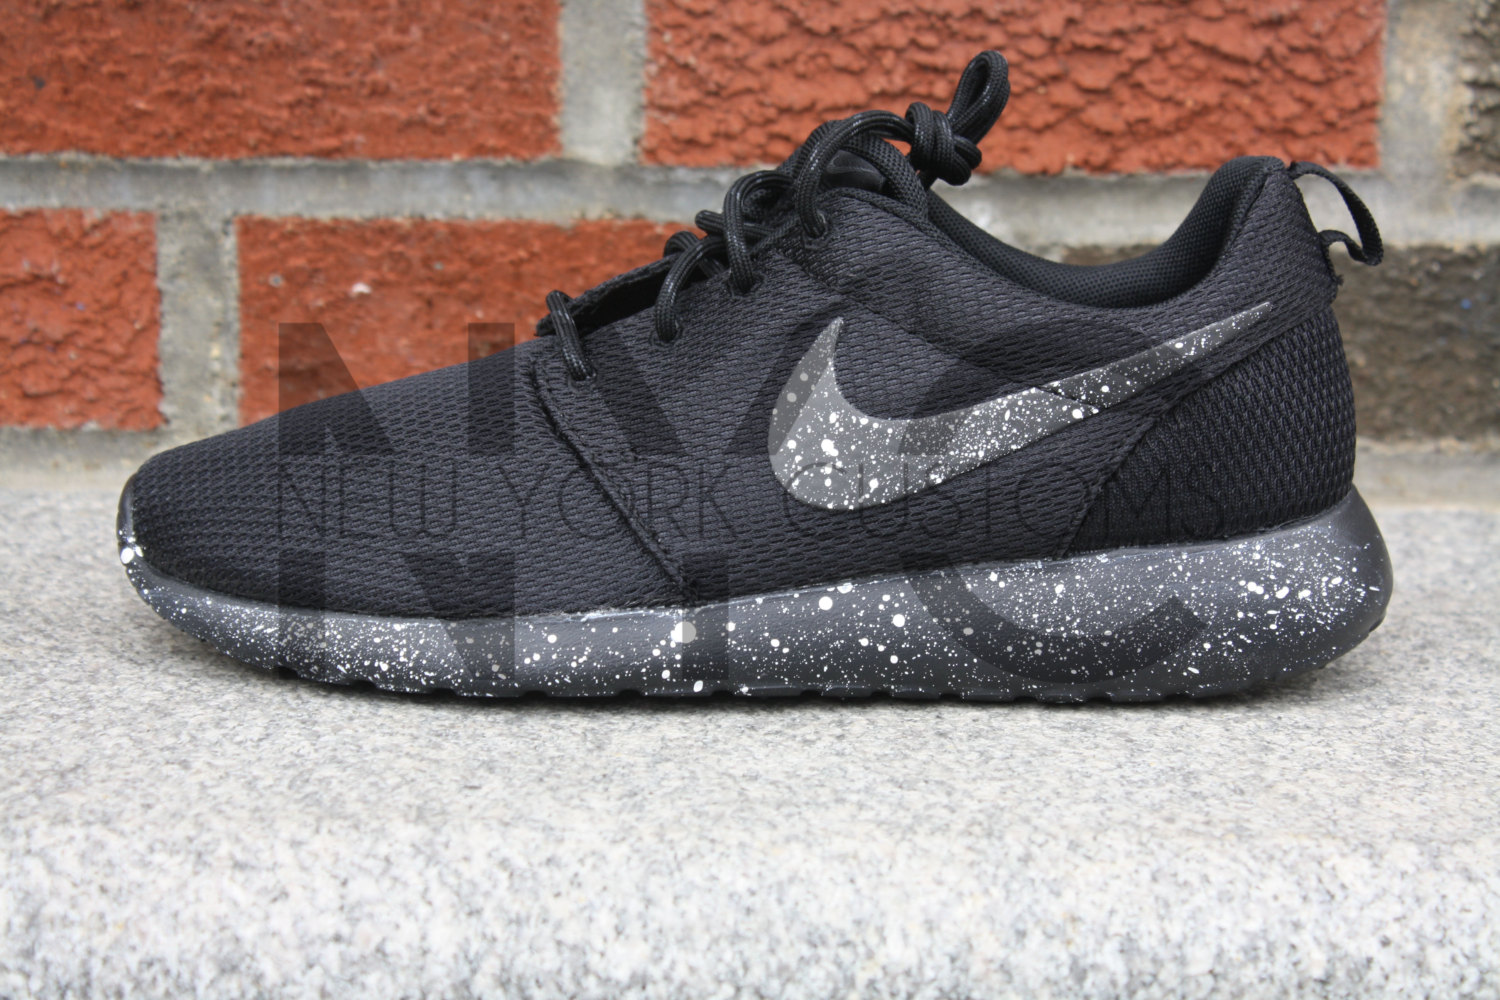 nike roshe one laufen schwarz wei splatter oreo gefleckt. Black Bedroom Furniture Sets. Home Design Ideas